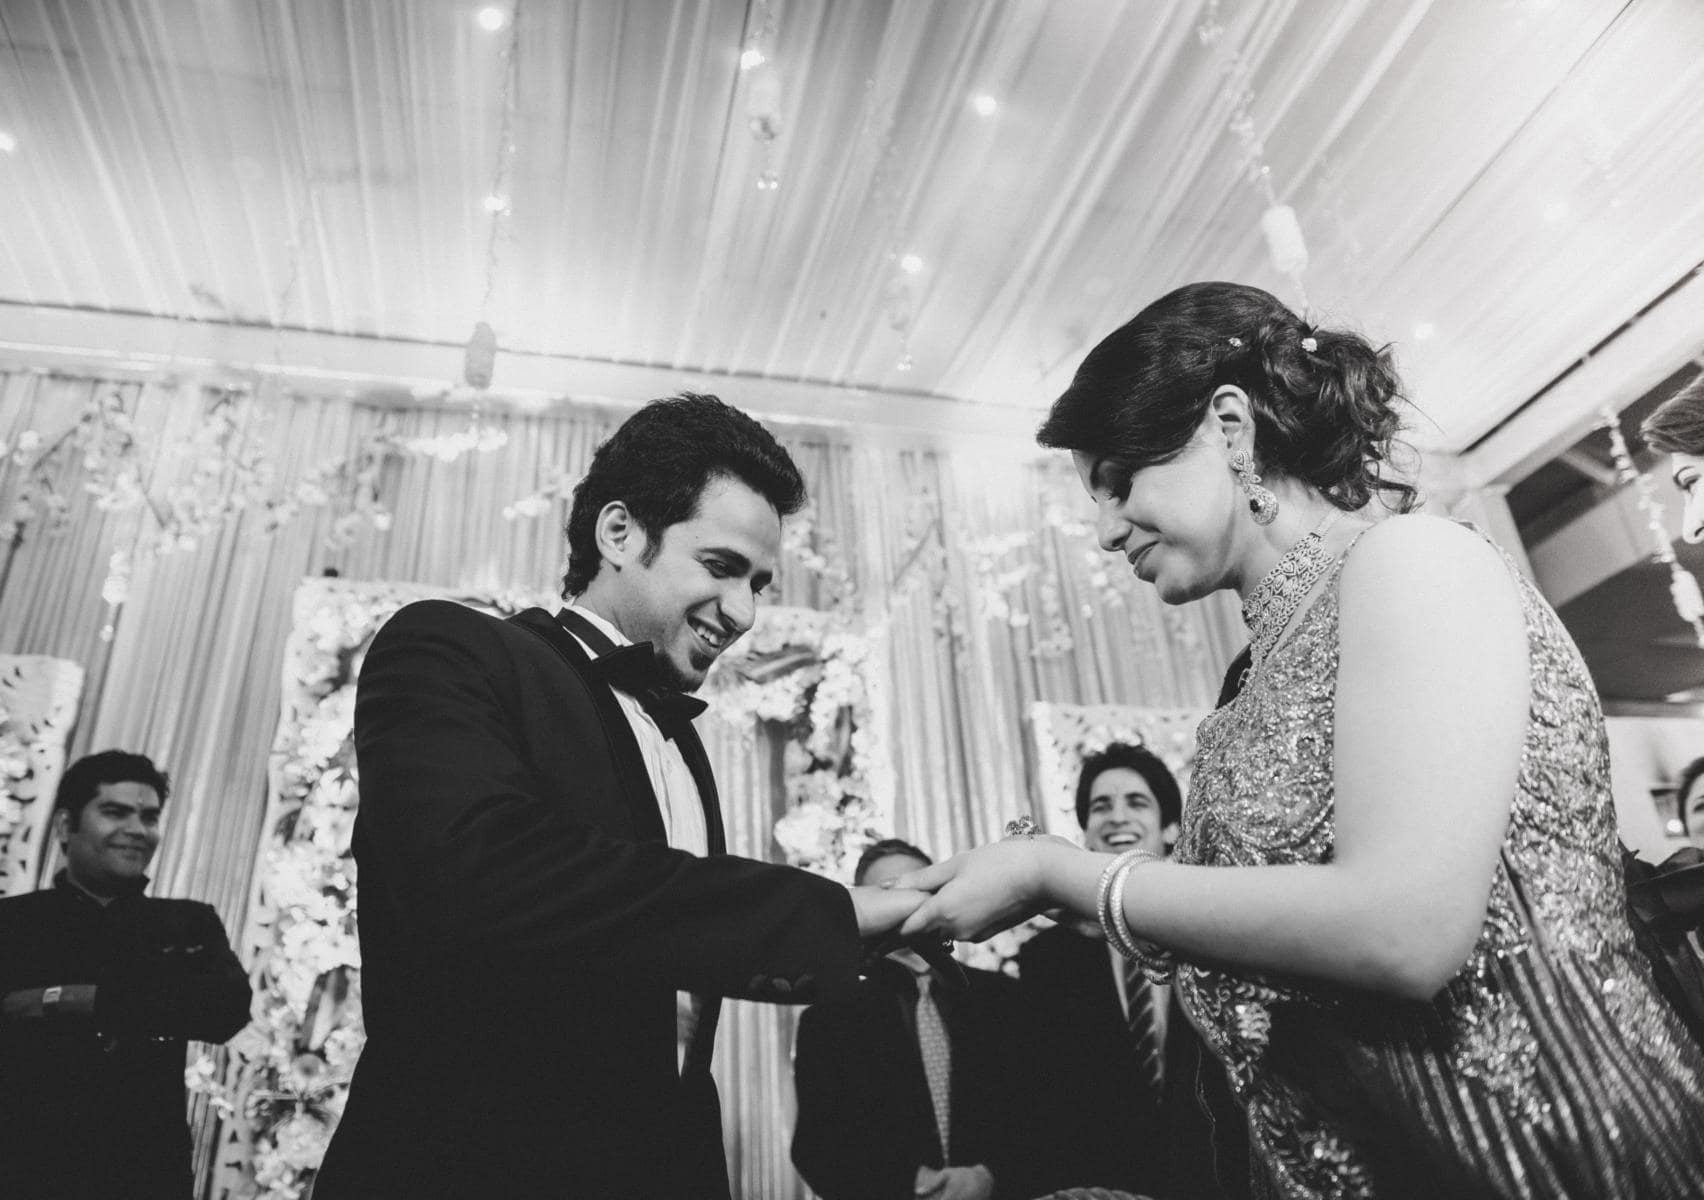 ring ceremony:kuntal mukherjee photography